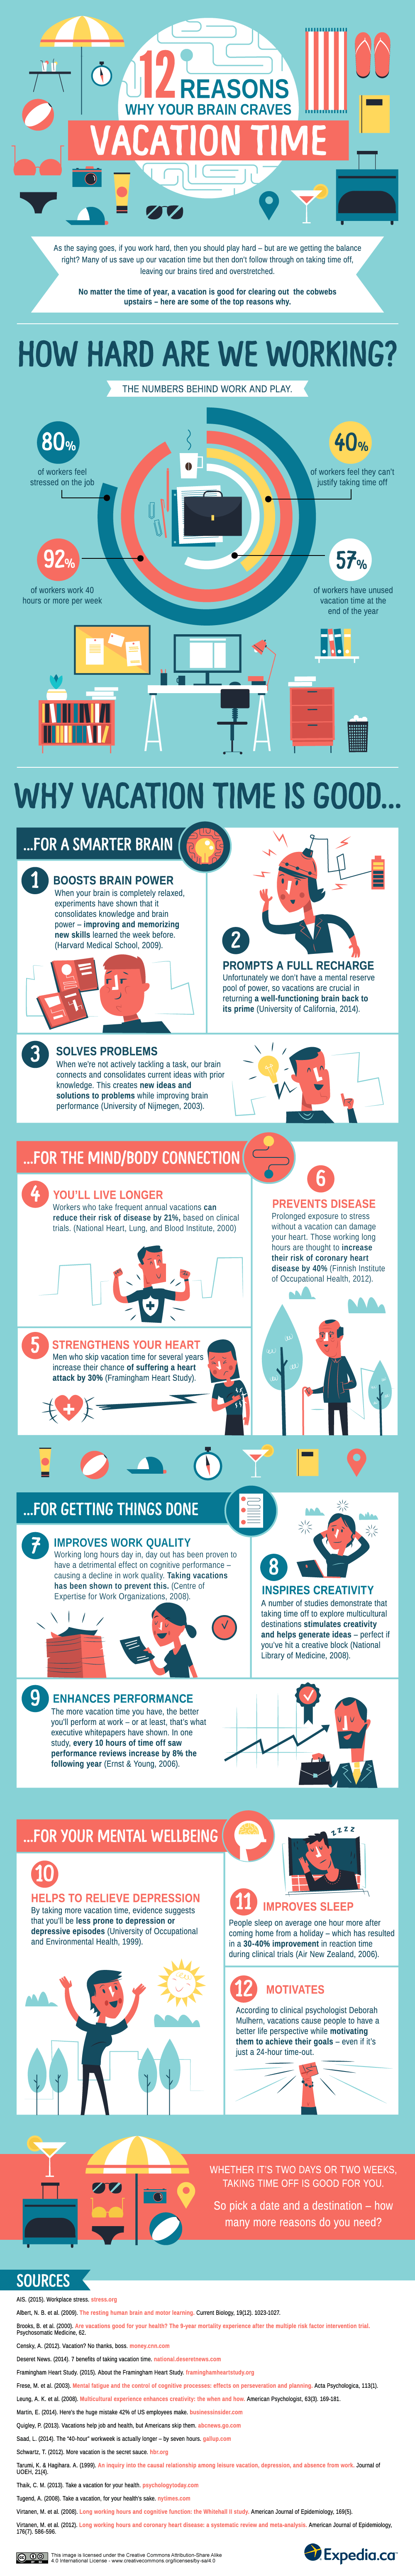 Infographic: 12 reasons to take a holiday